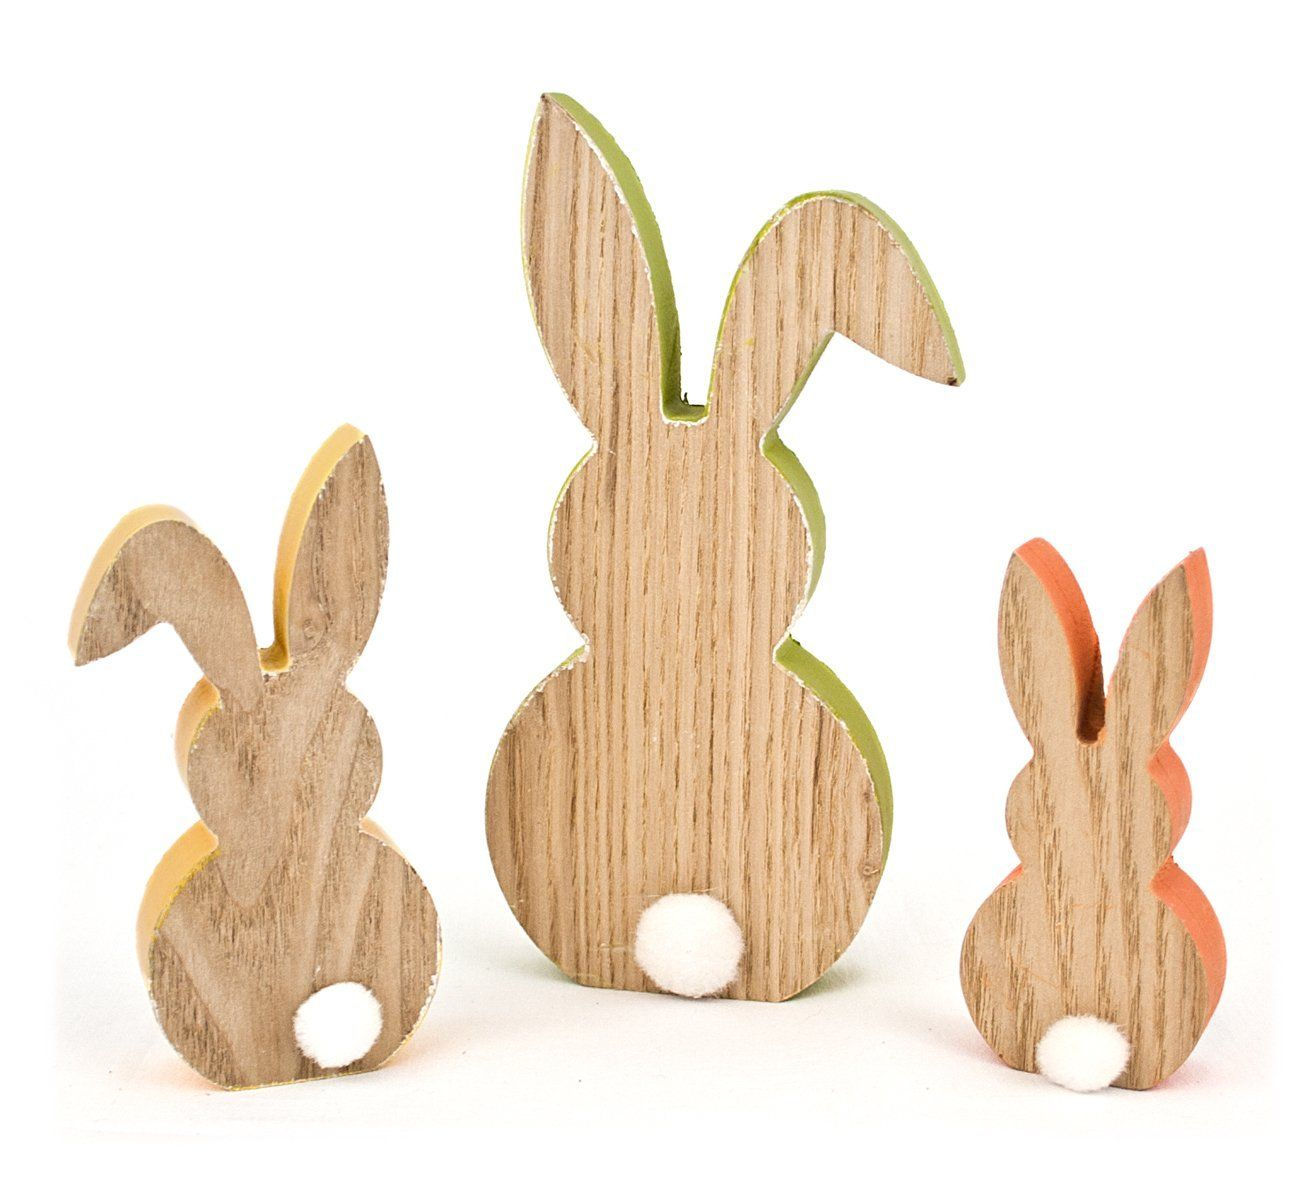 3x deko figur osterhase hase silhouette aus holz 18 12 10cm osterdeko fr hlingsdeko diy. Black Bedroom Furniture Sets. Home Design Ideas